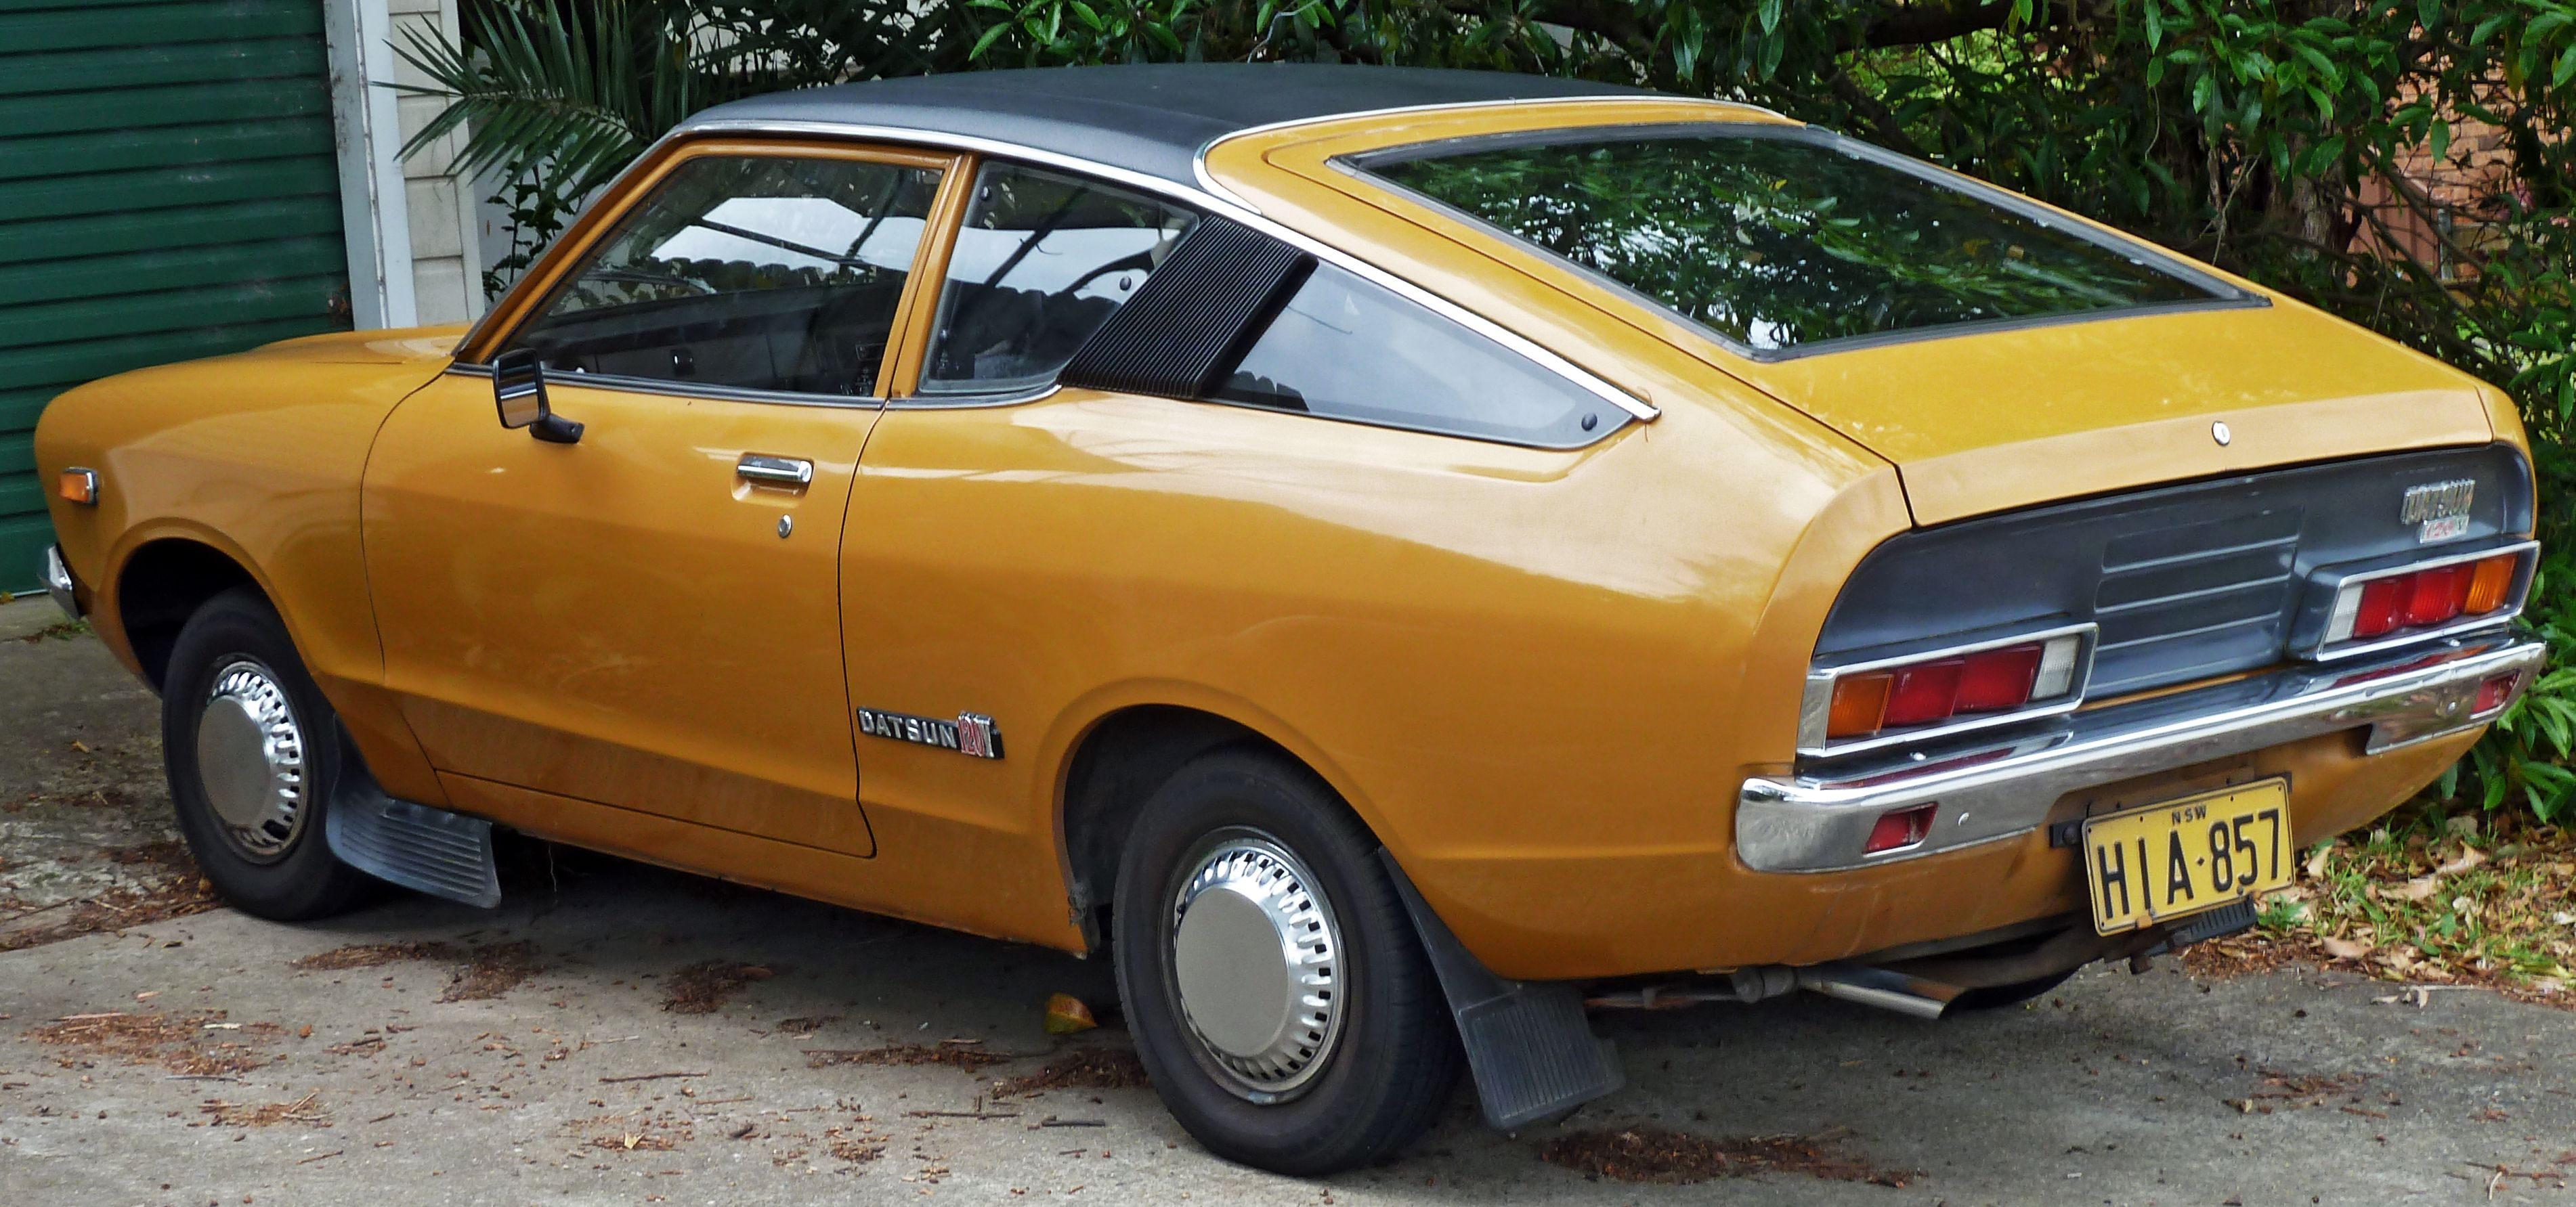 datsun 120y cars and bikes i have owned pinterest cars and